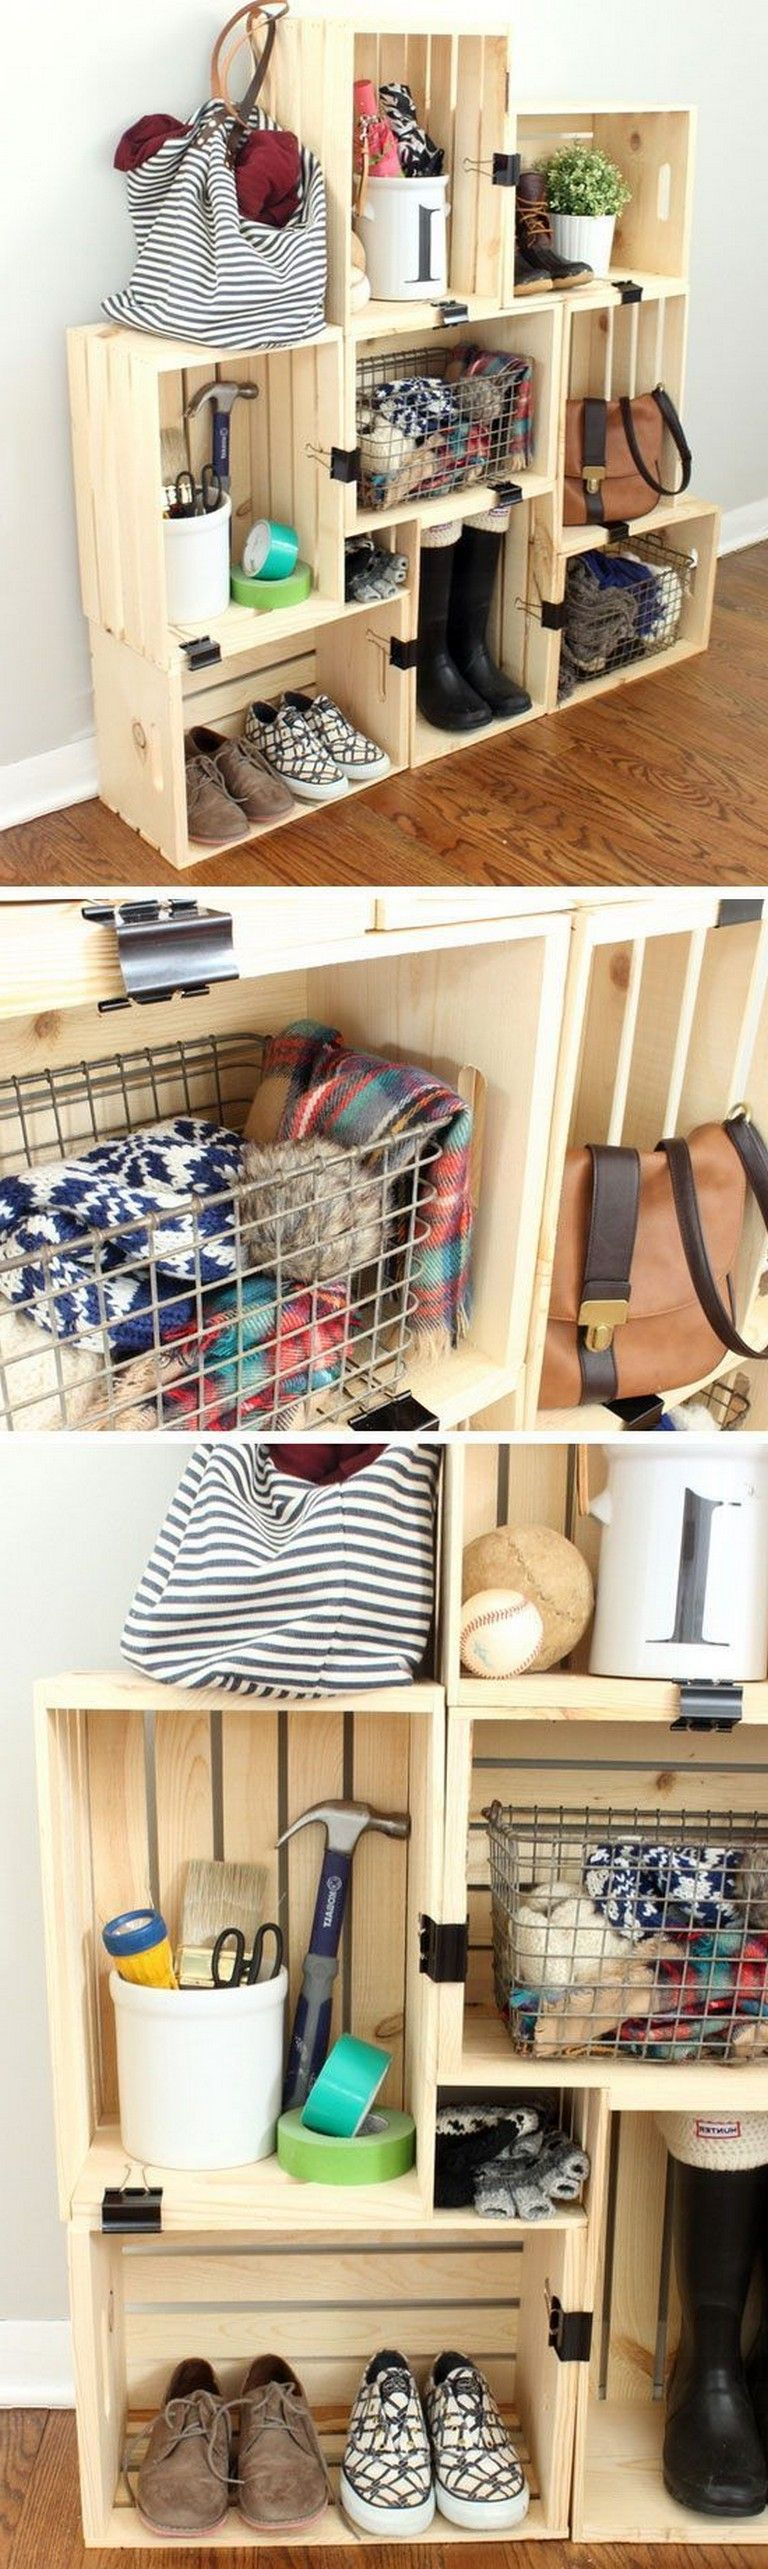 48 inspiring cheap and easy diy apartment decorating